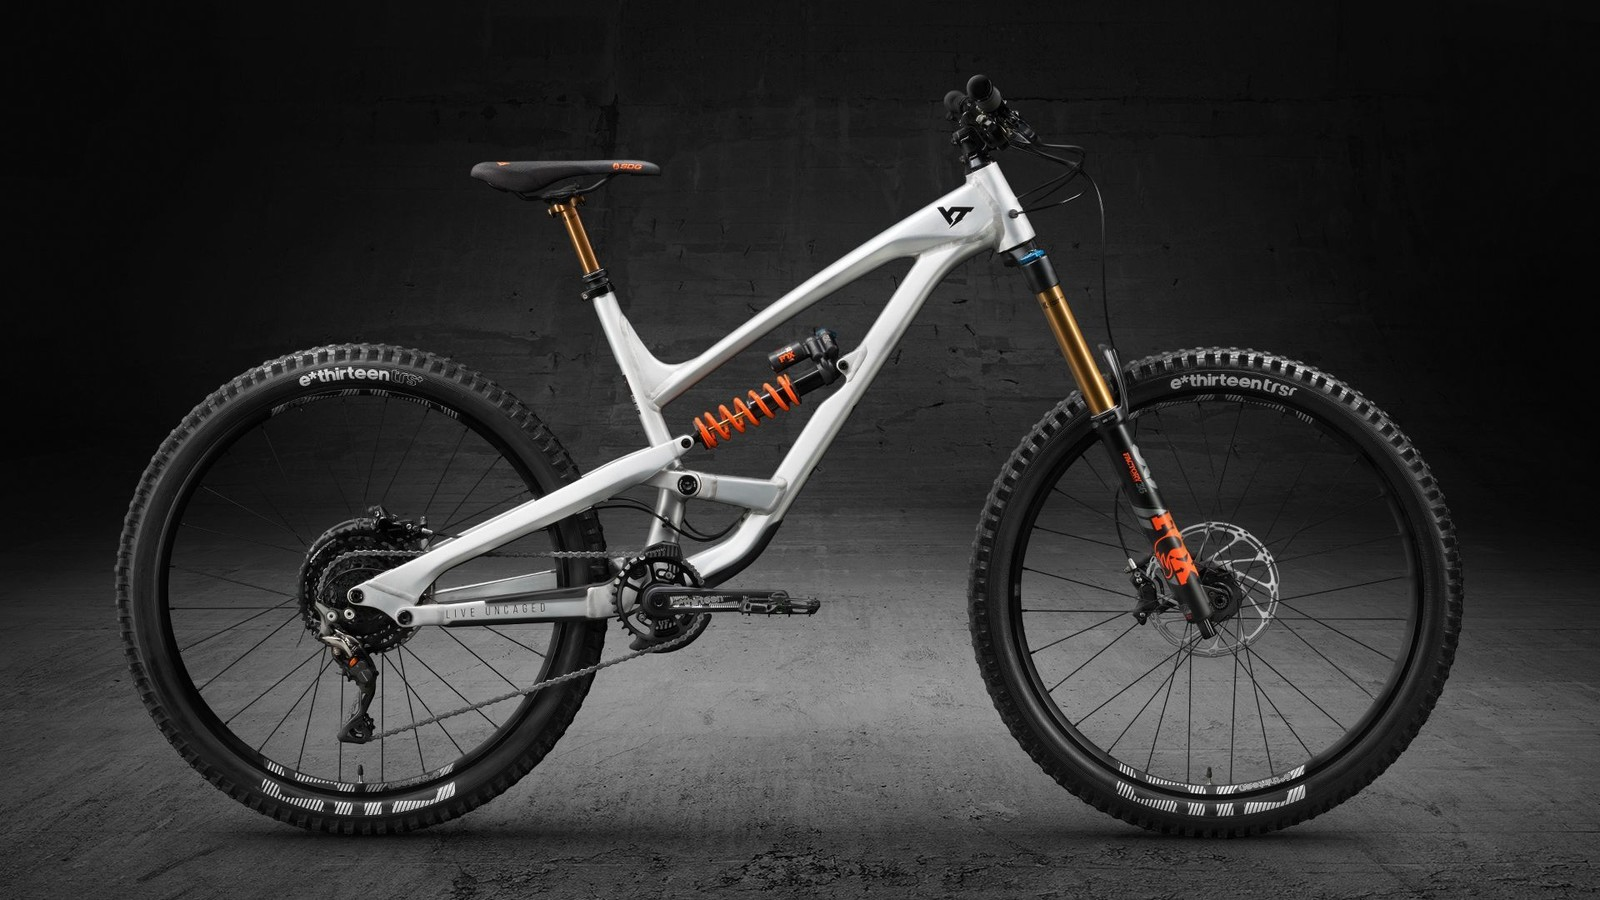 YT Launches the CAPRA Limited Edition